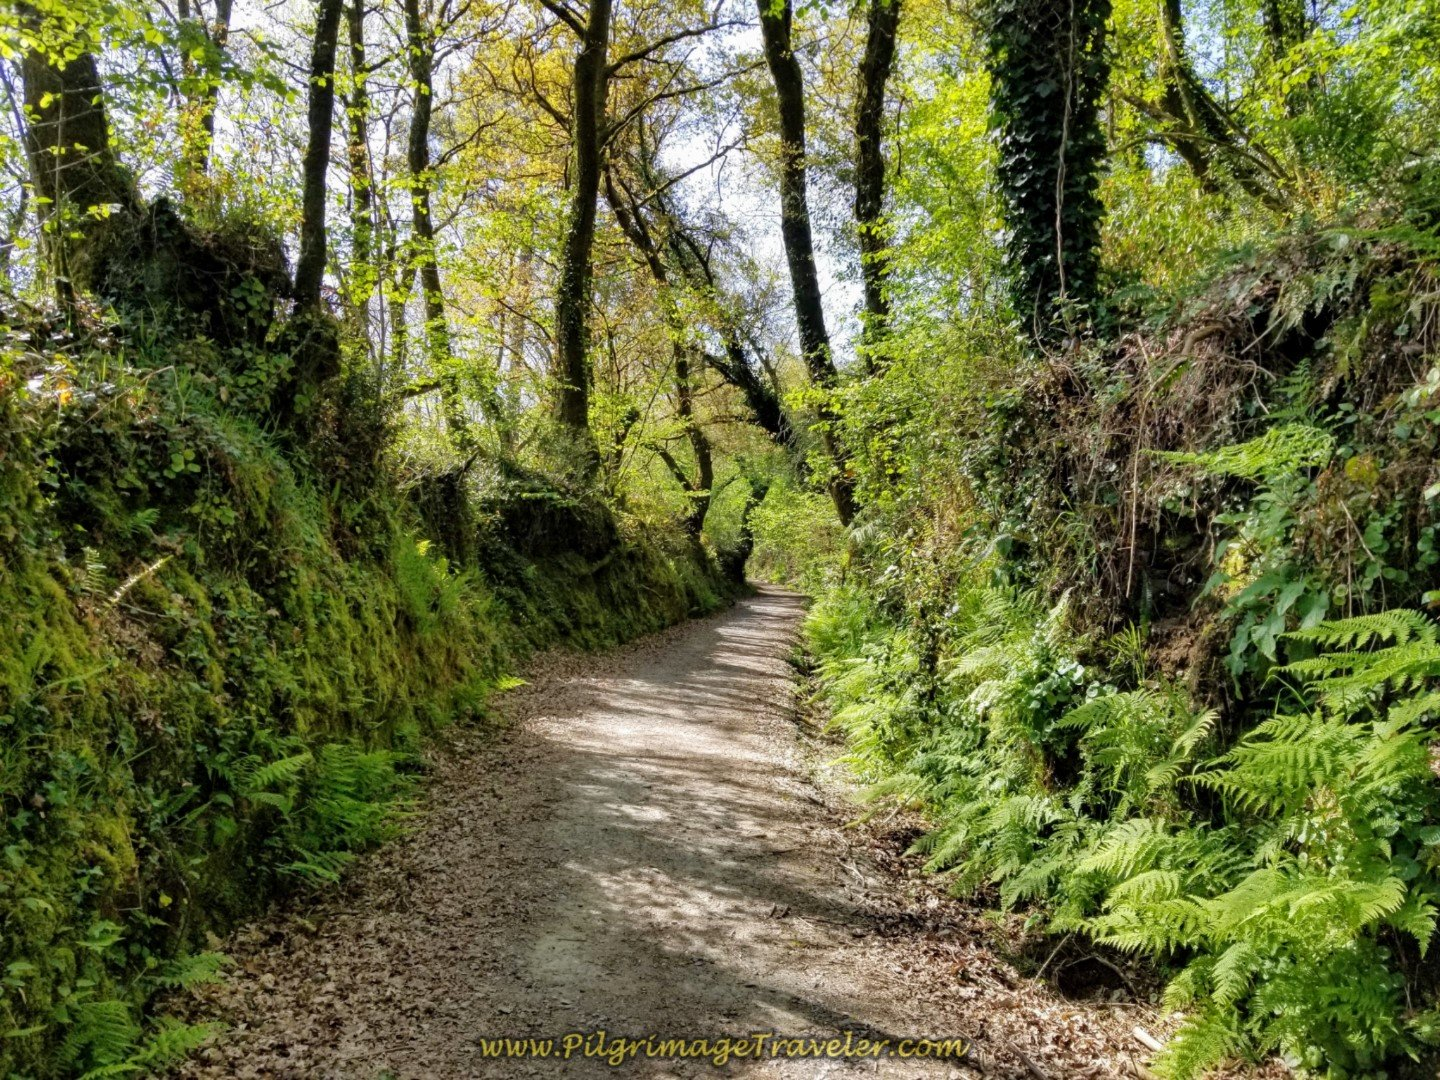 Entering a Lush and Verdant Forest on day seven of the English Way